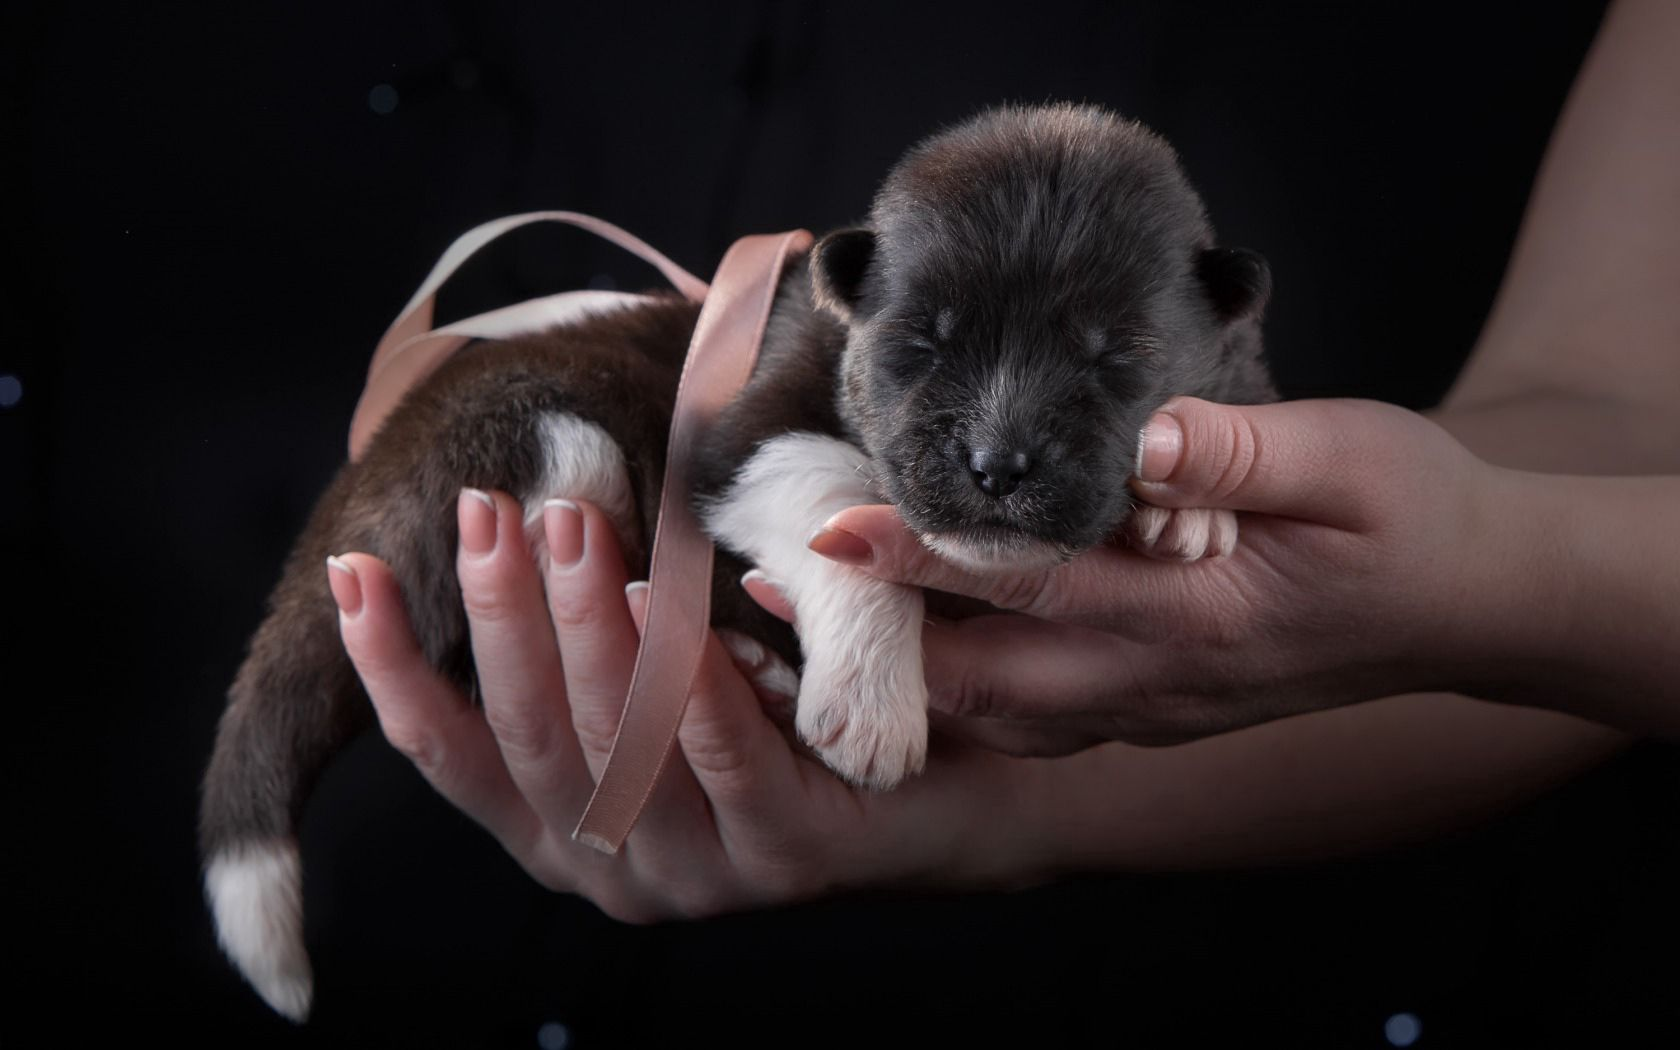 130748 download wallpaper Animals, Puppy, Dog, Tape, Hands screensavers and pictures for free